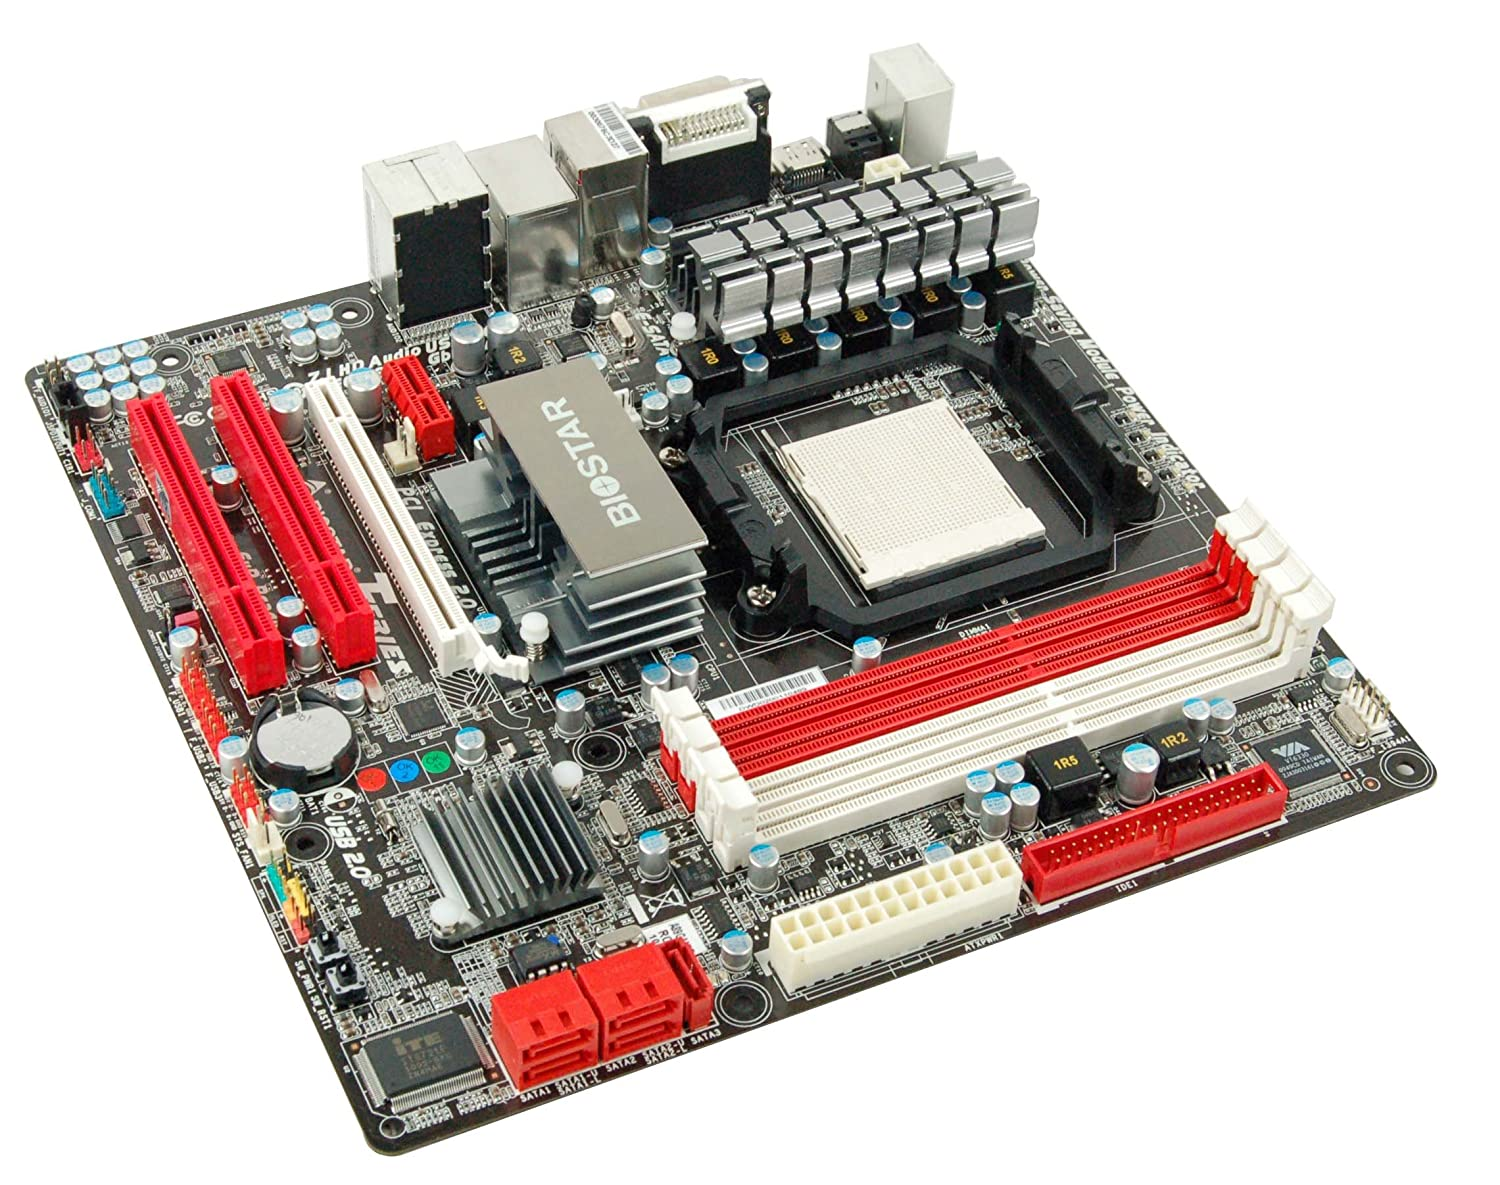 BIOSTAR TA890GXE MOTHERBOARD WINDOWS 7 DRIVERS DOWNLOAD (2019)